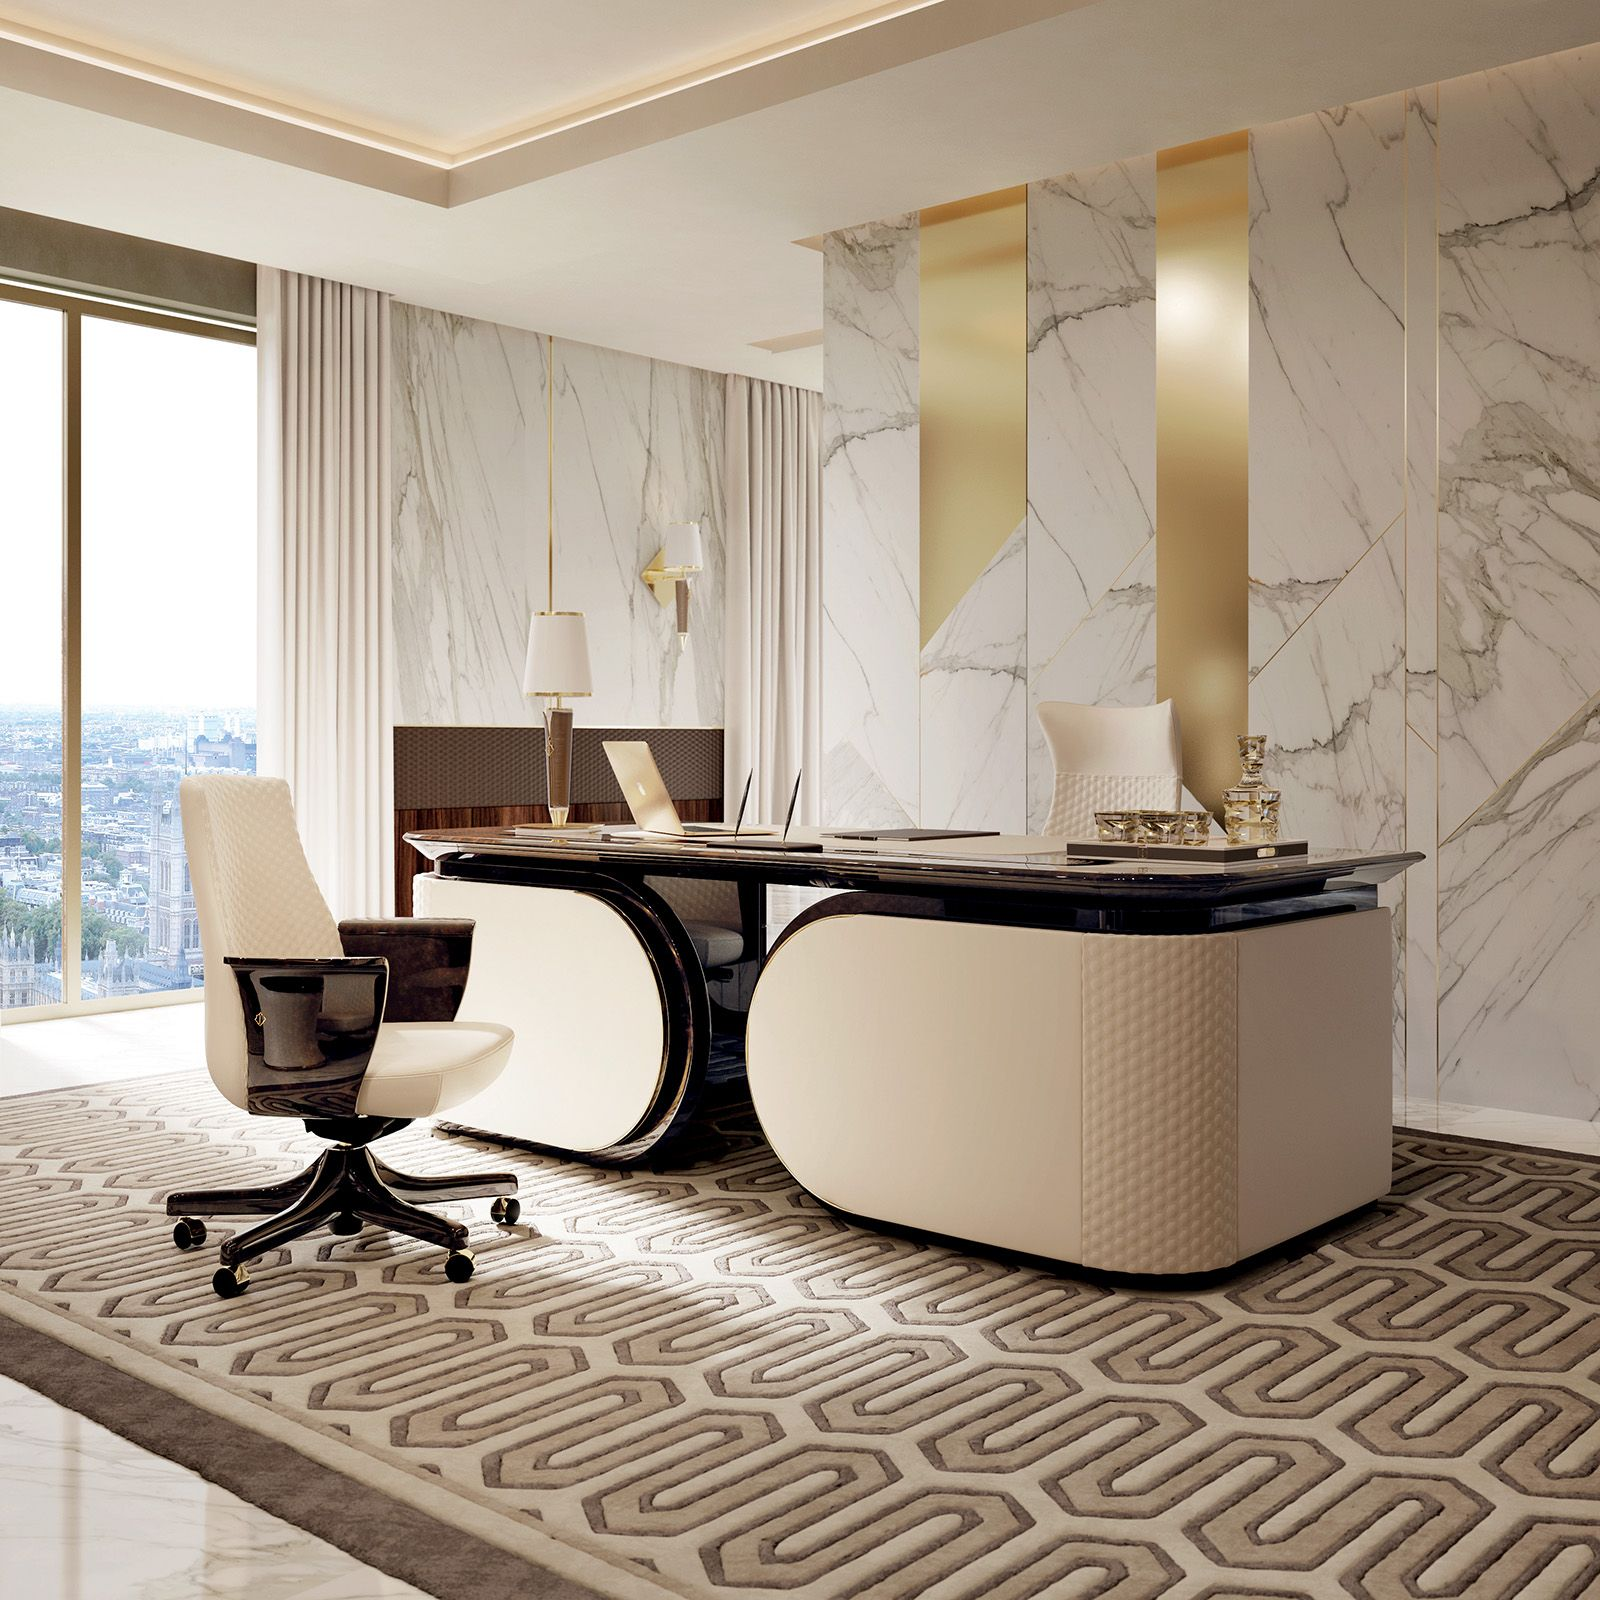 Vogue collection italian luxury office desk Italian designs